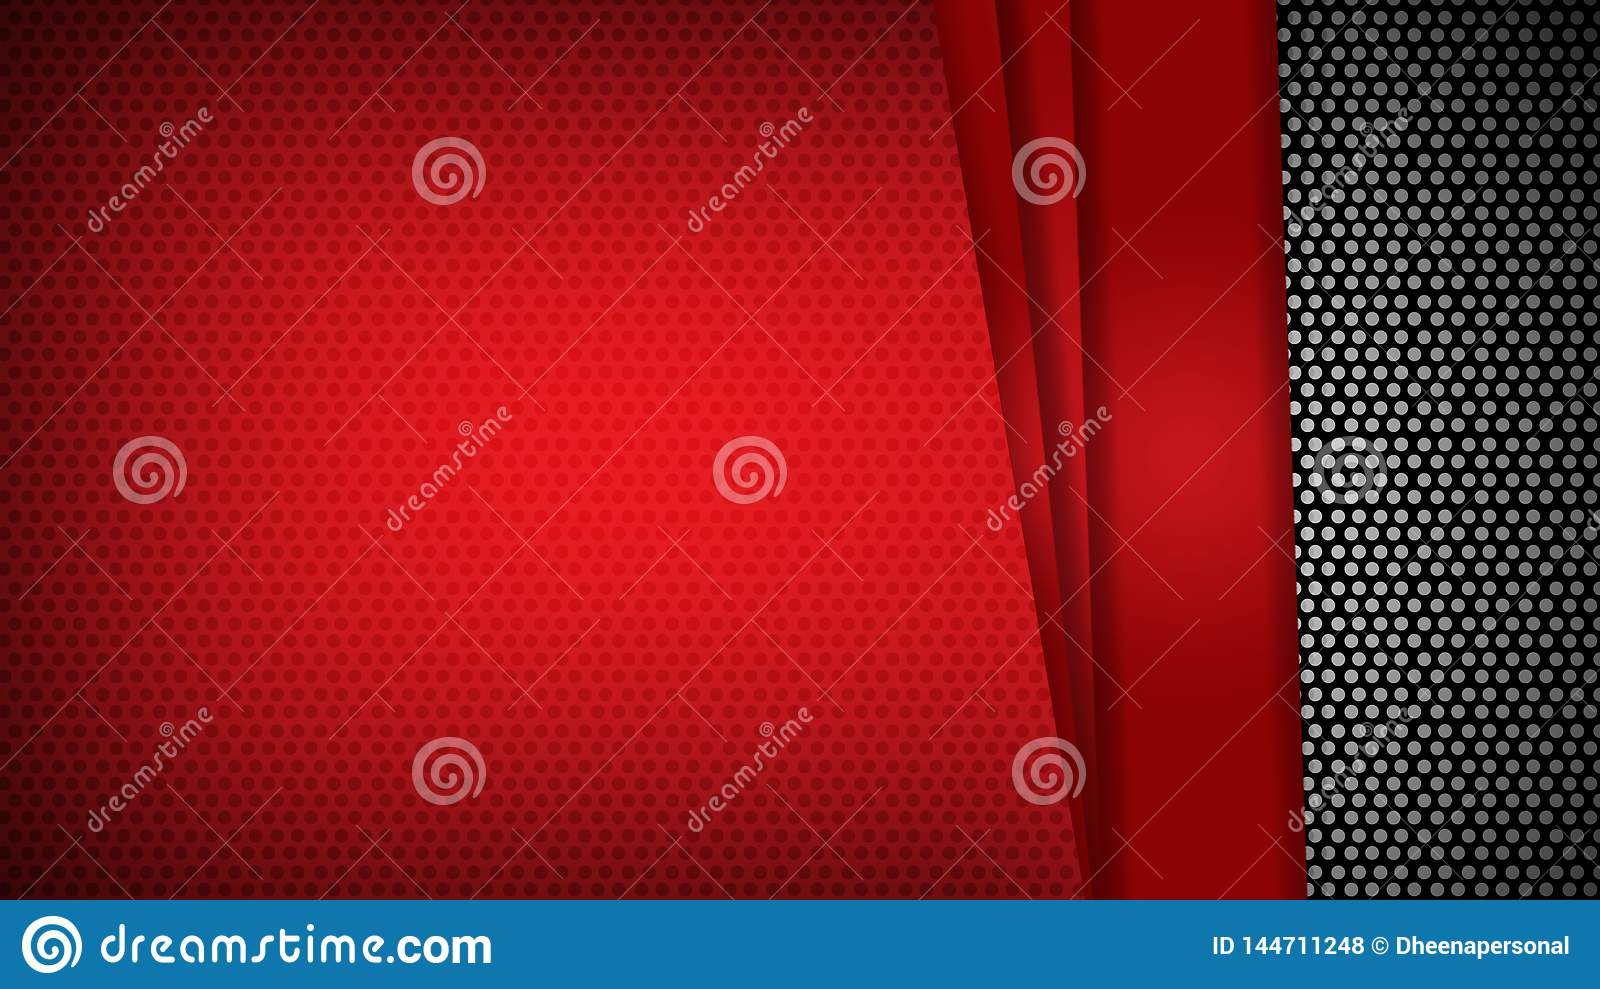 Abstract template red geometric triangles contrast black background. You can use for corporate design, cover brochure, book, banne